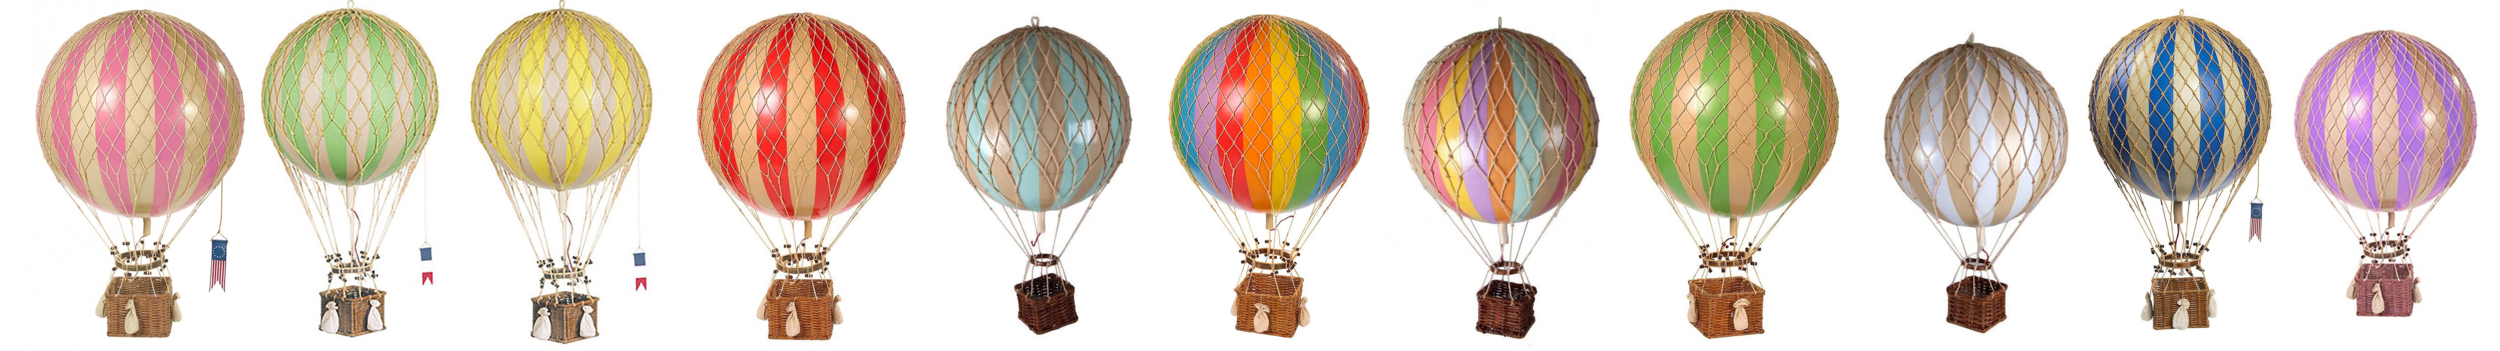 Hot Air Balloons Various sizes and colors available, please inquire   INQUIRE